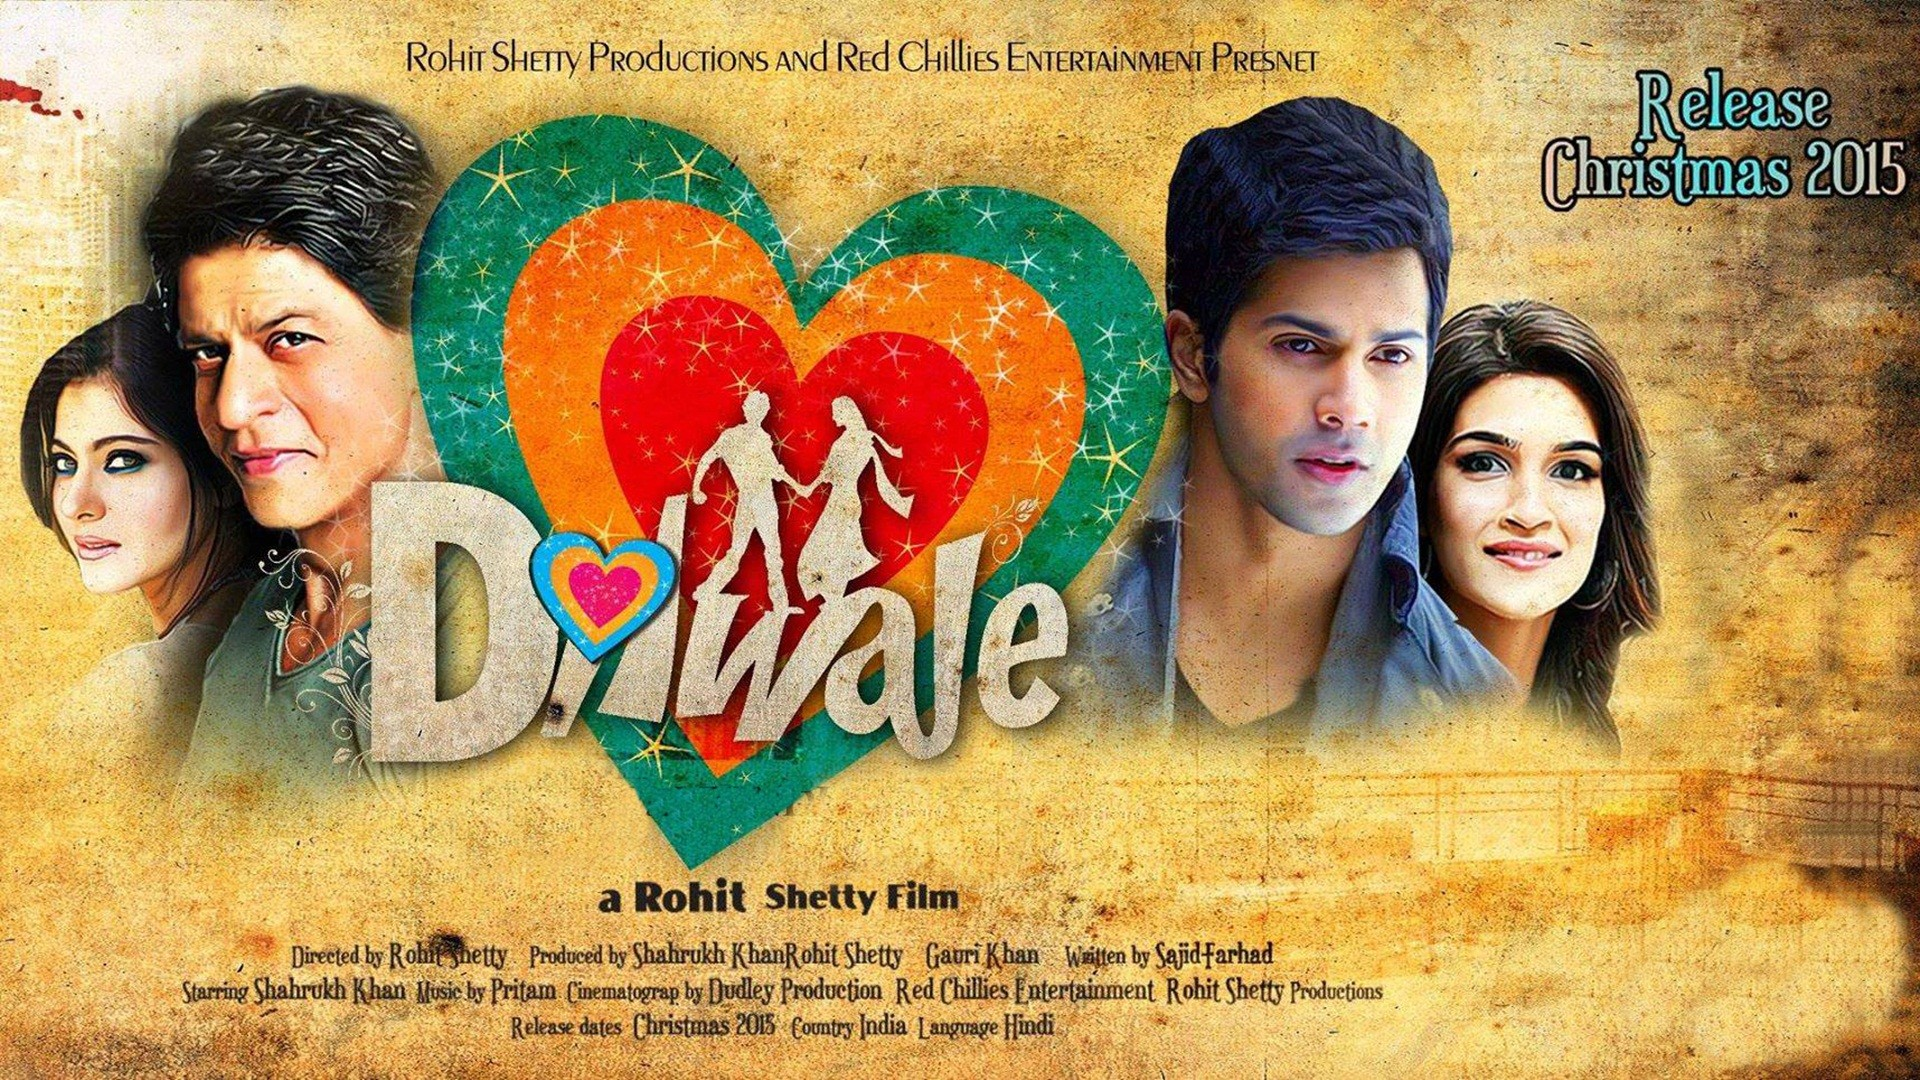 Total 1st Monday Collection Of Dilwale Movie 4th Day Box Office Report